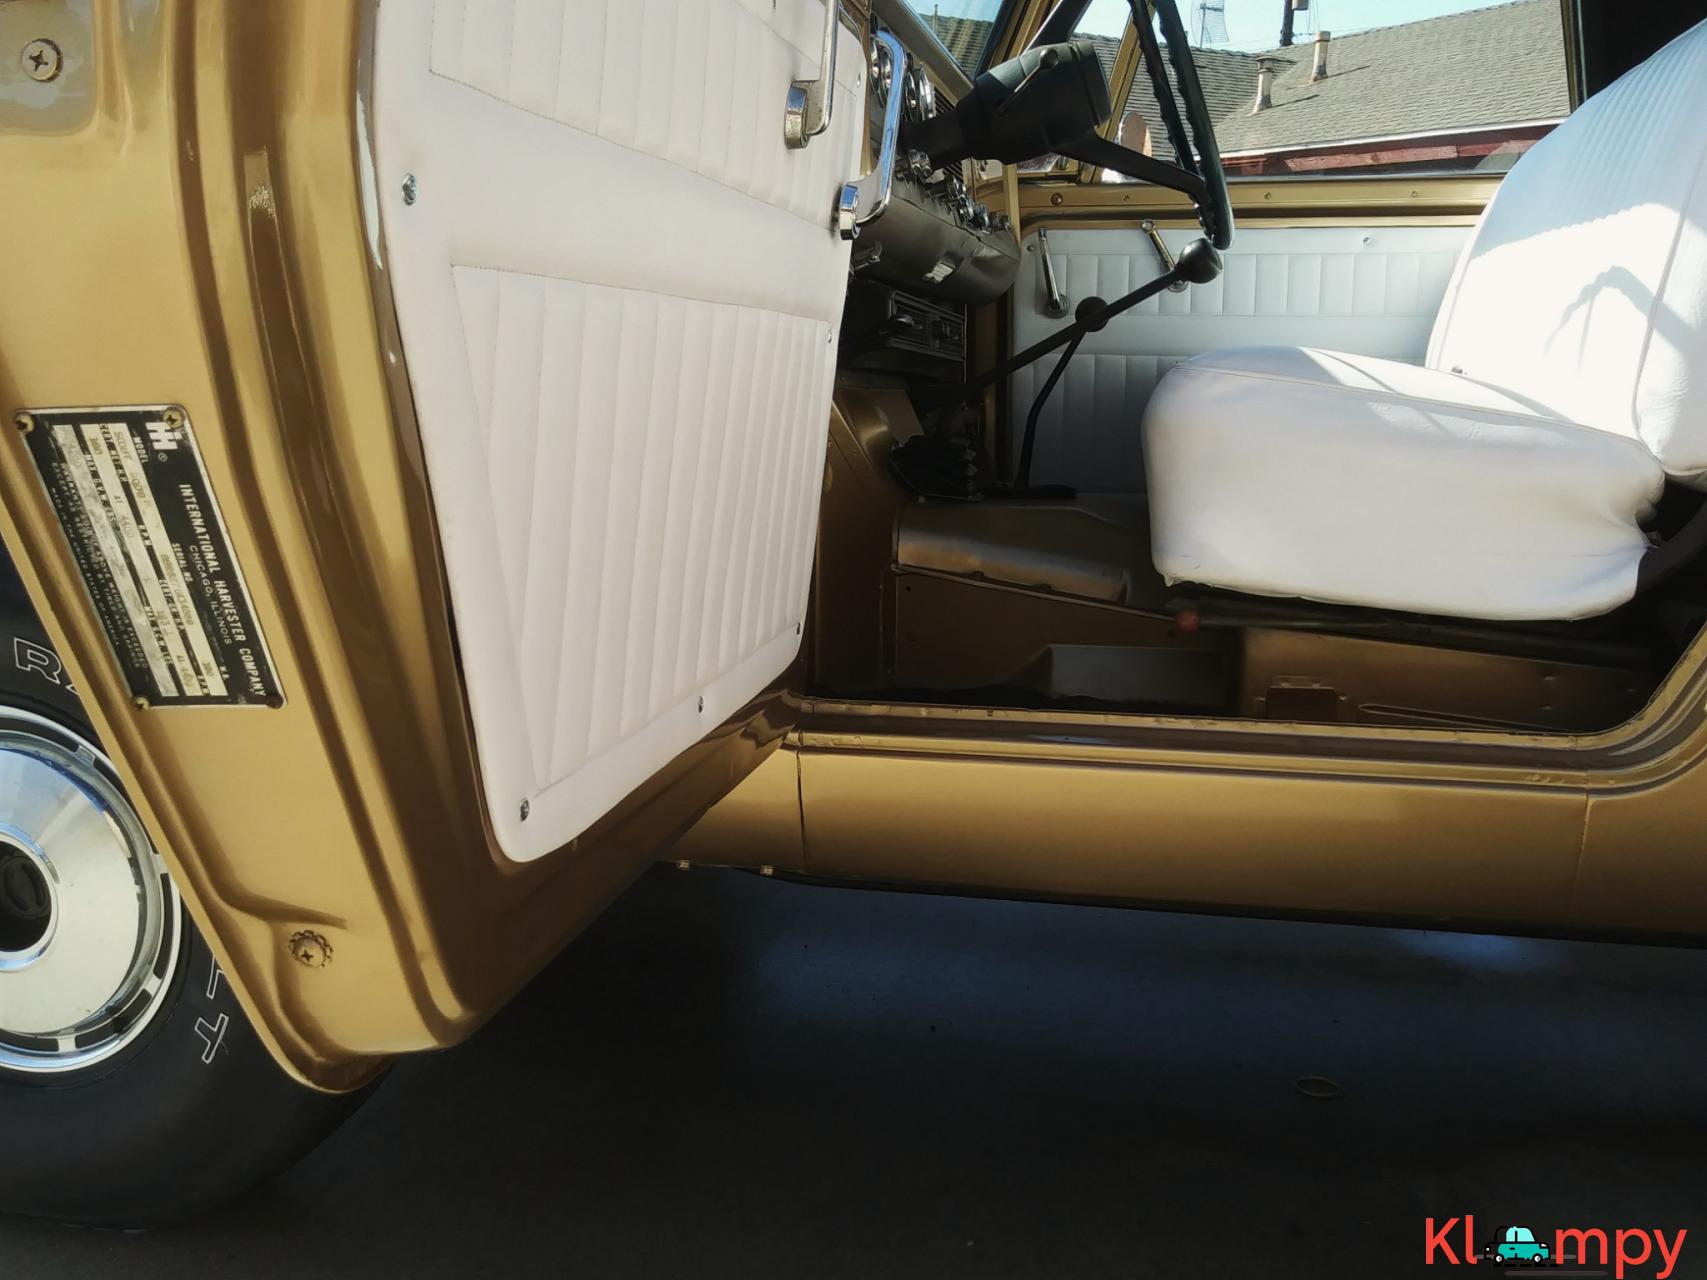 1971 International Harvester Scout 800B Apache Gold Poly 4x4 - 14/14